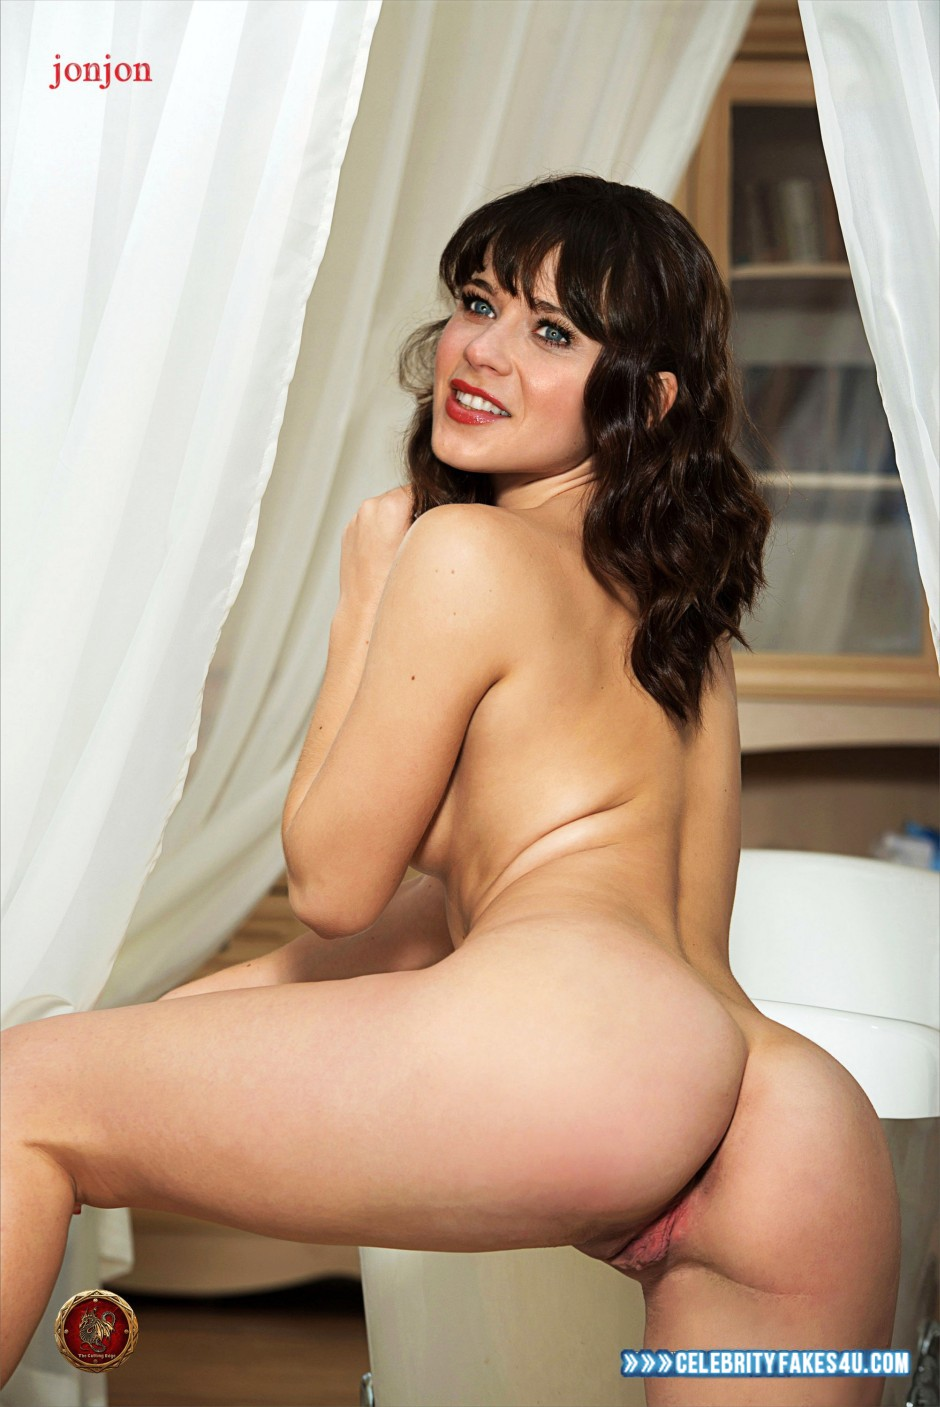 Zooey deschanel fake porn